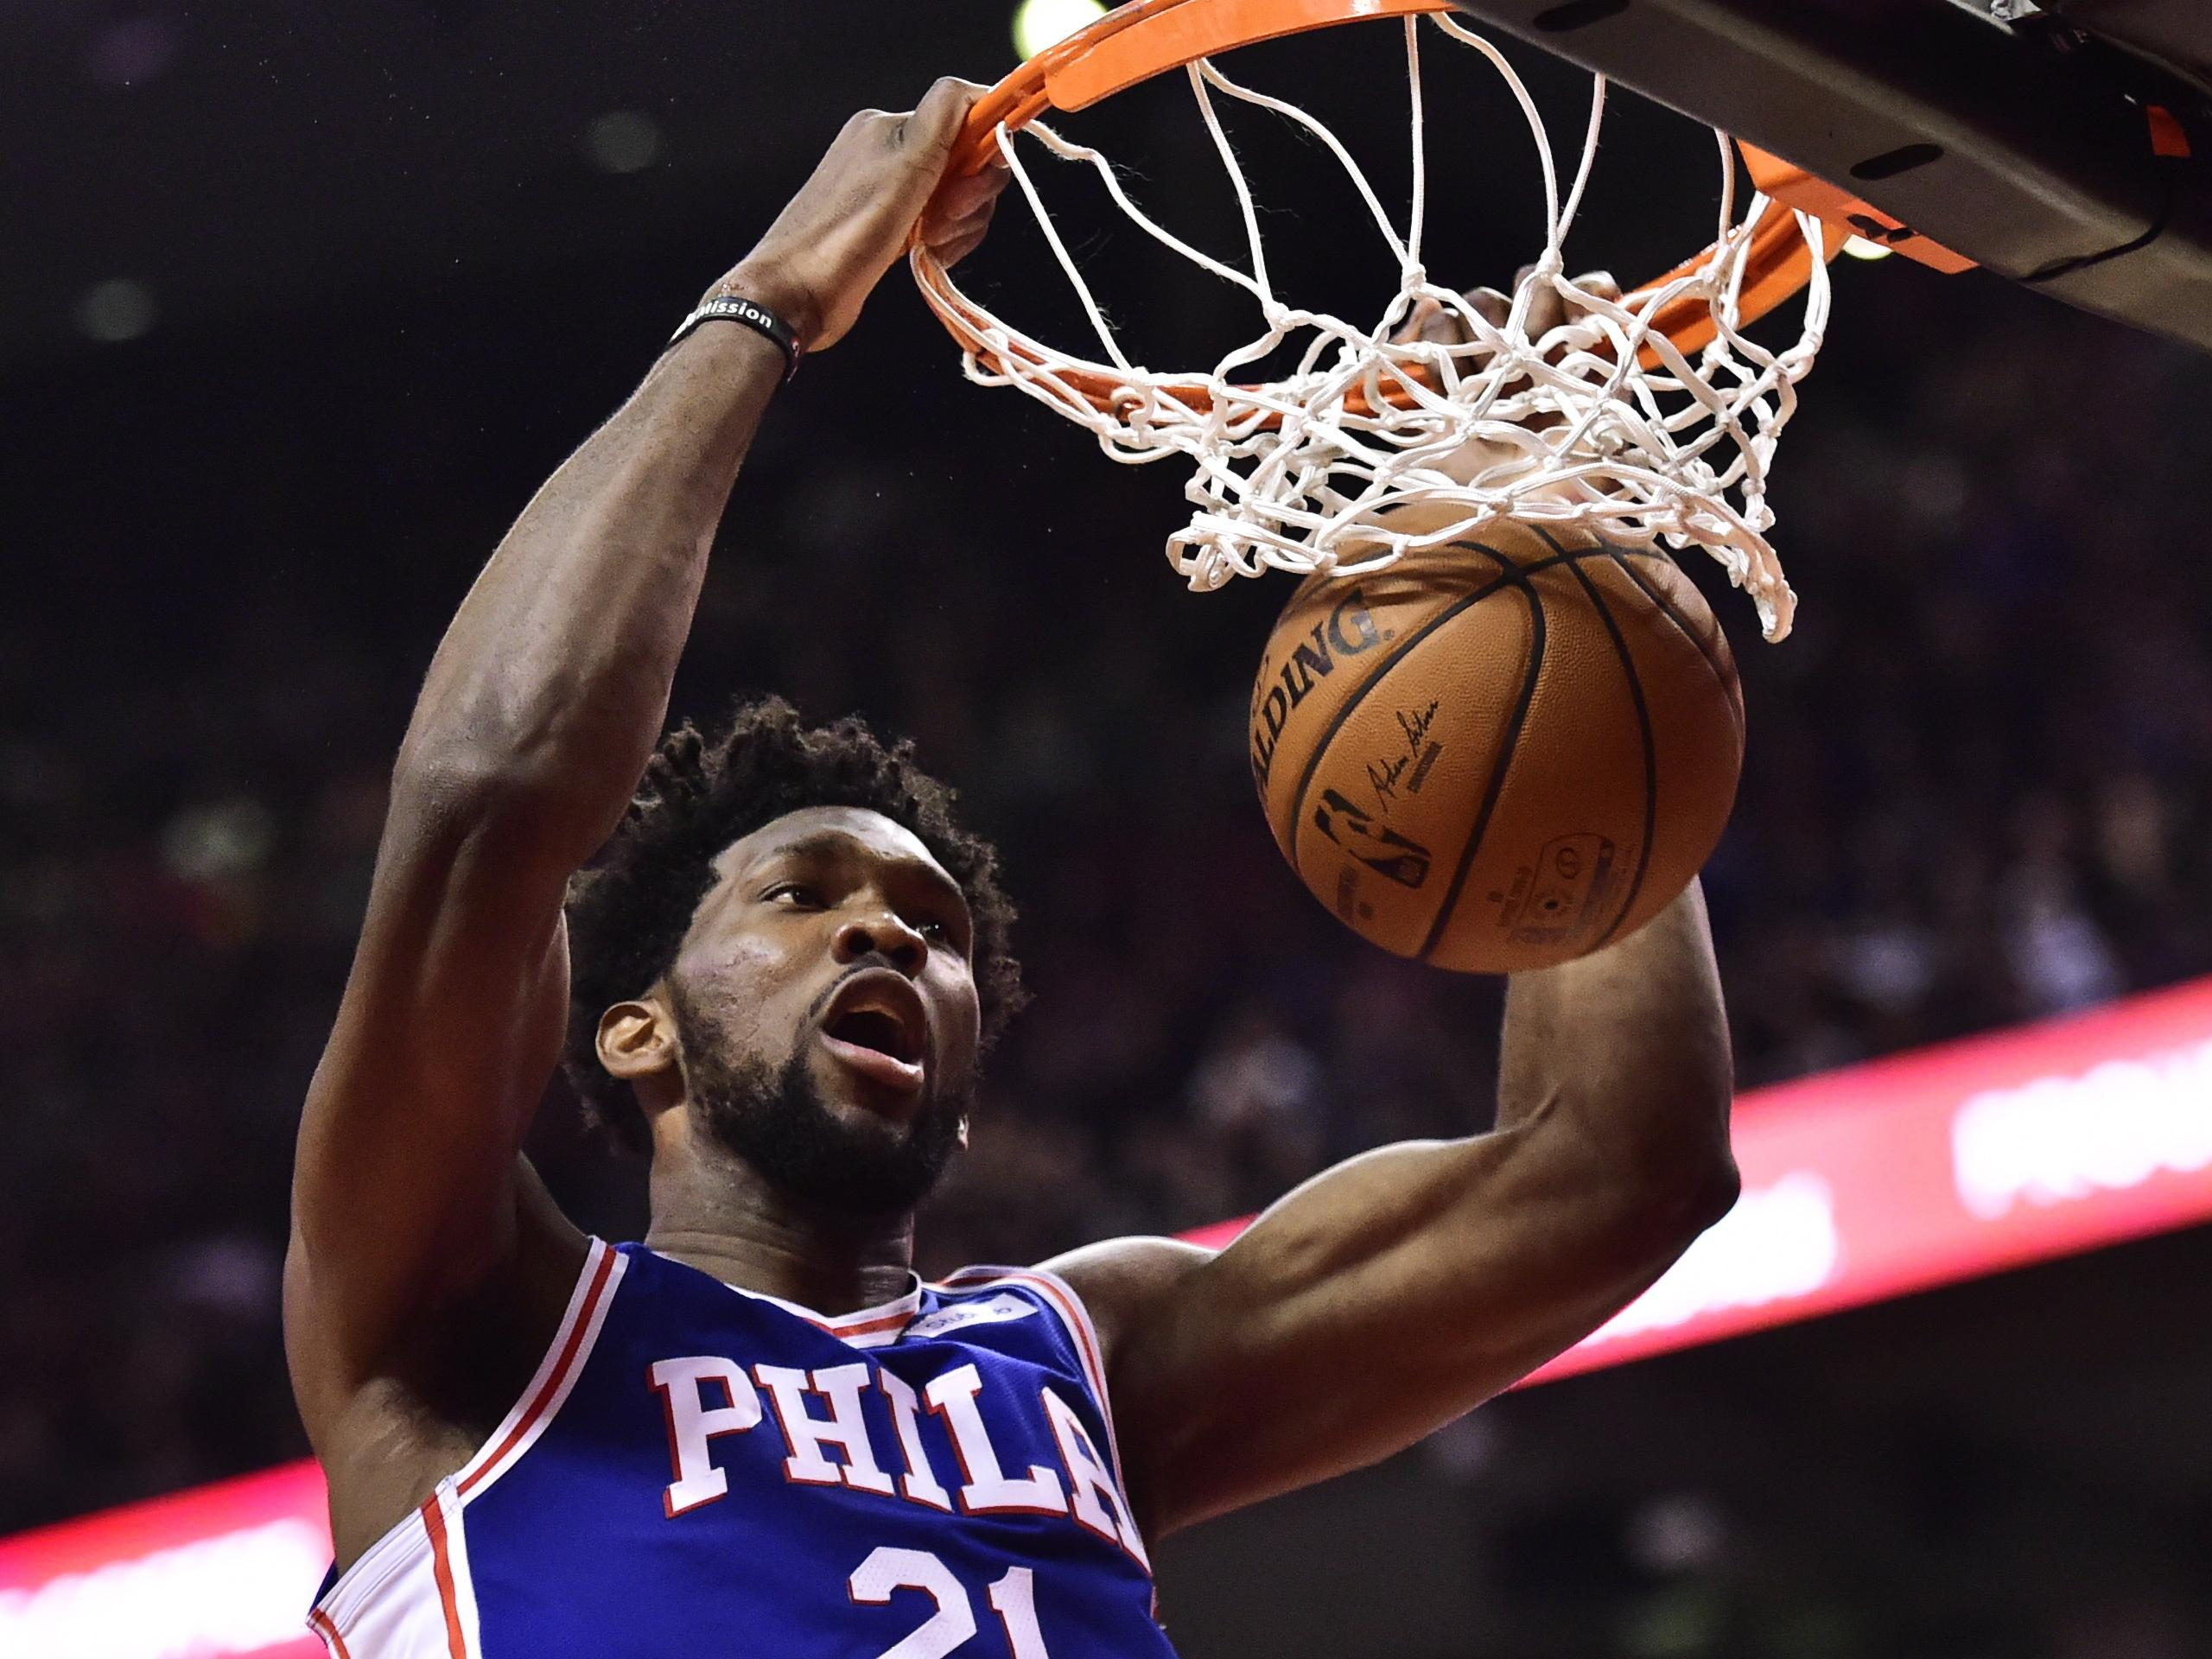 Joel Embiid and the 76ers head to Boston to take on the Celtics